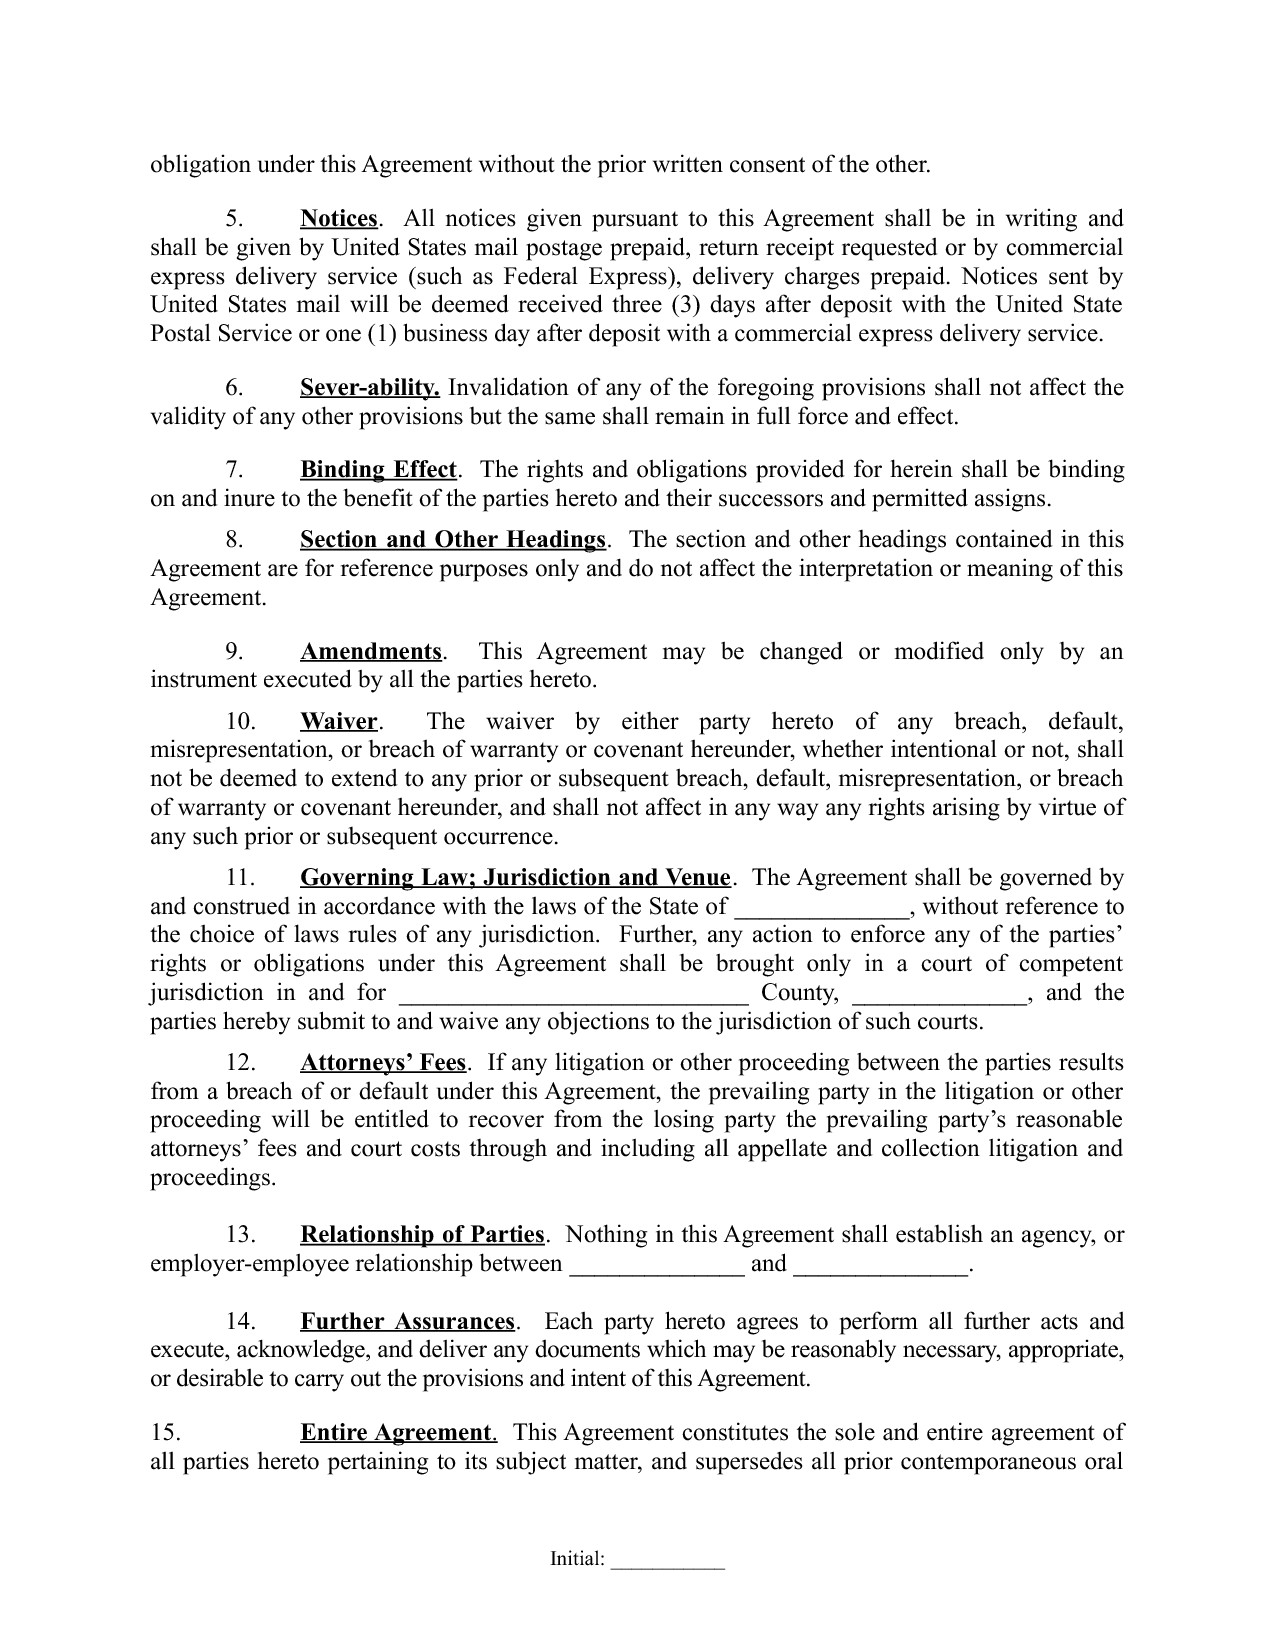 Real Estate Partnership Agreement Partnership Agreement 1